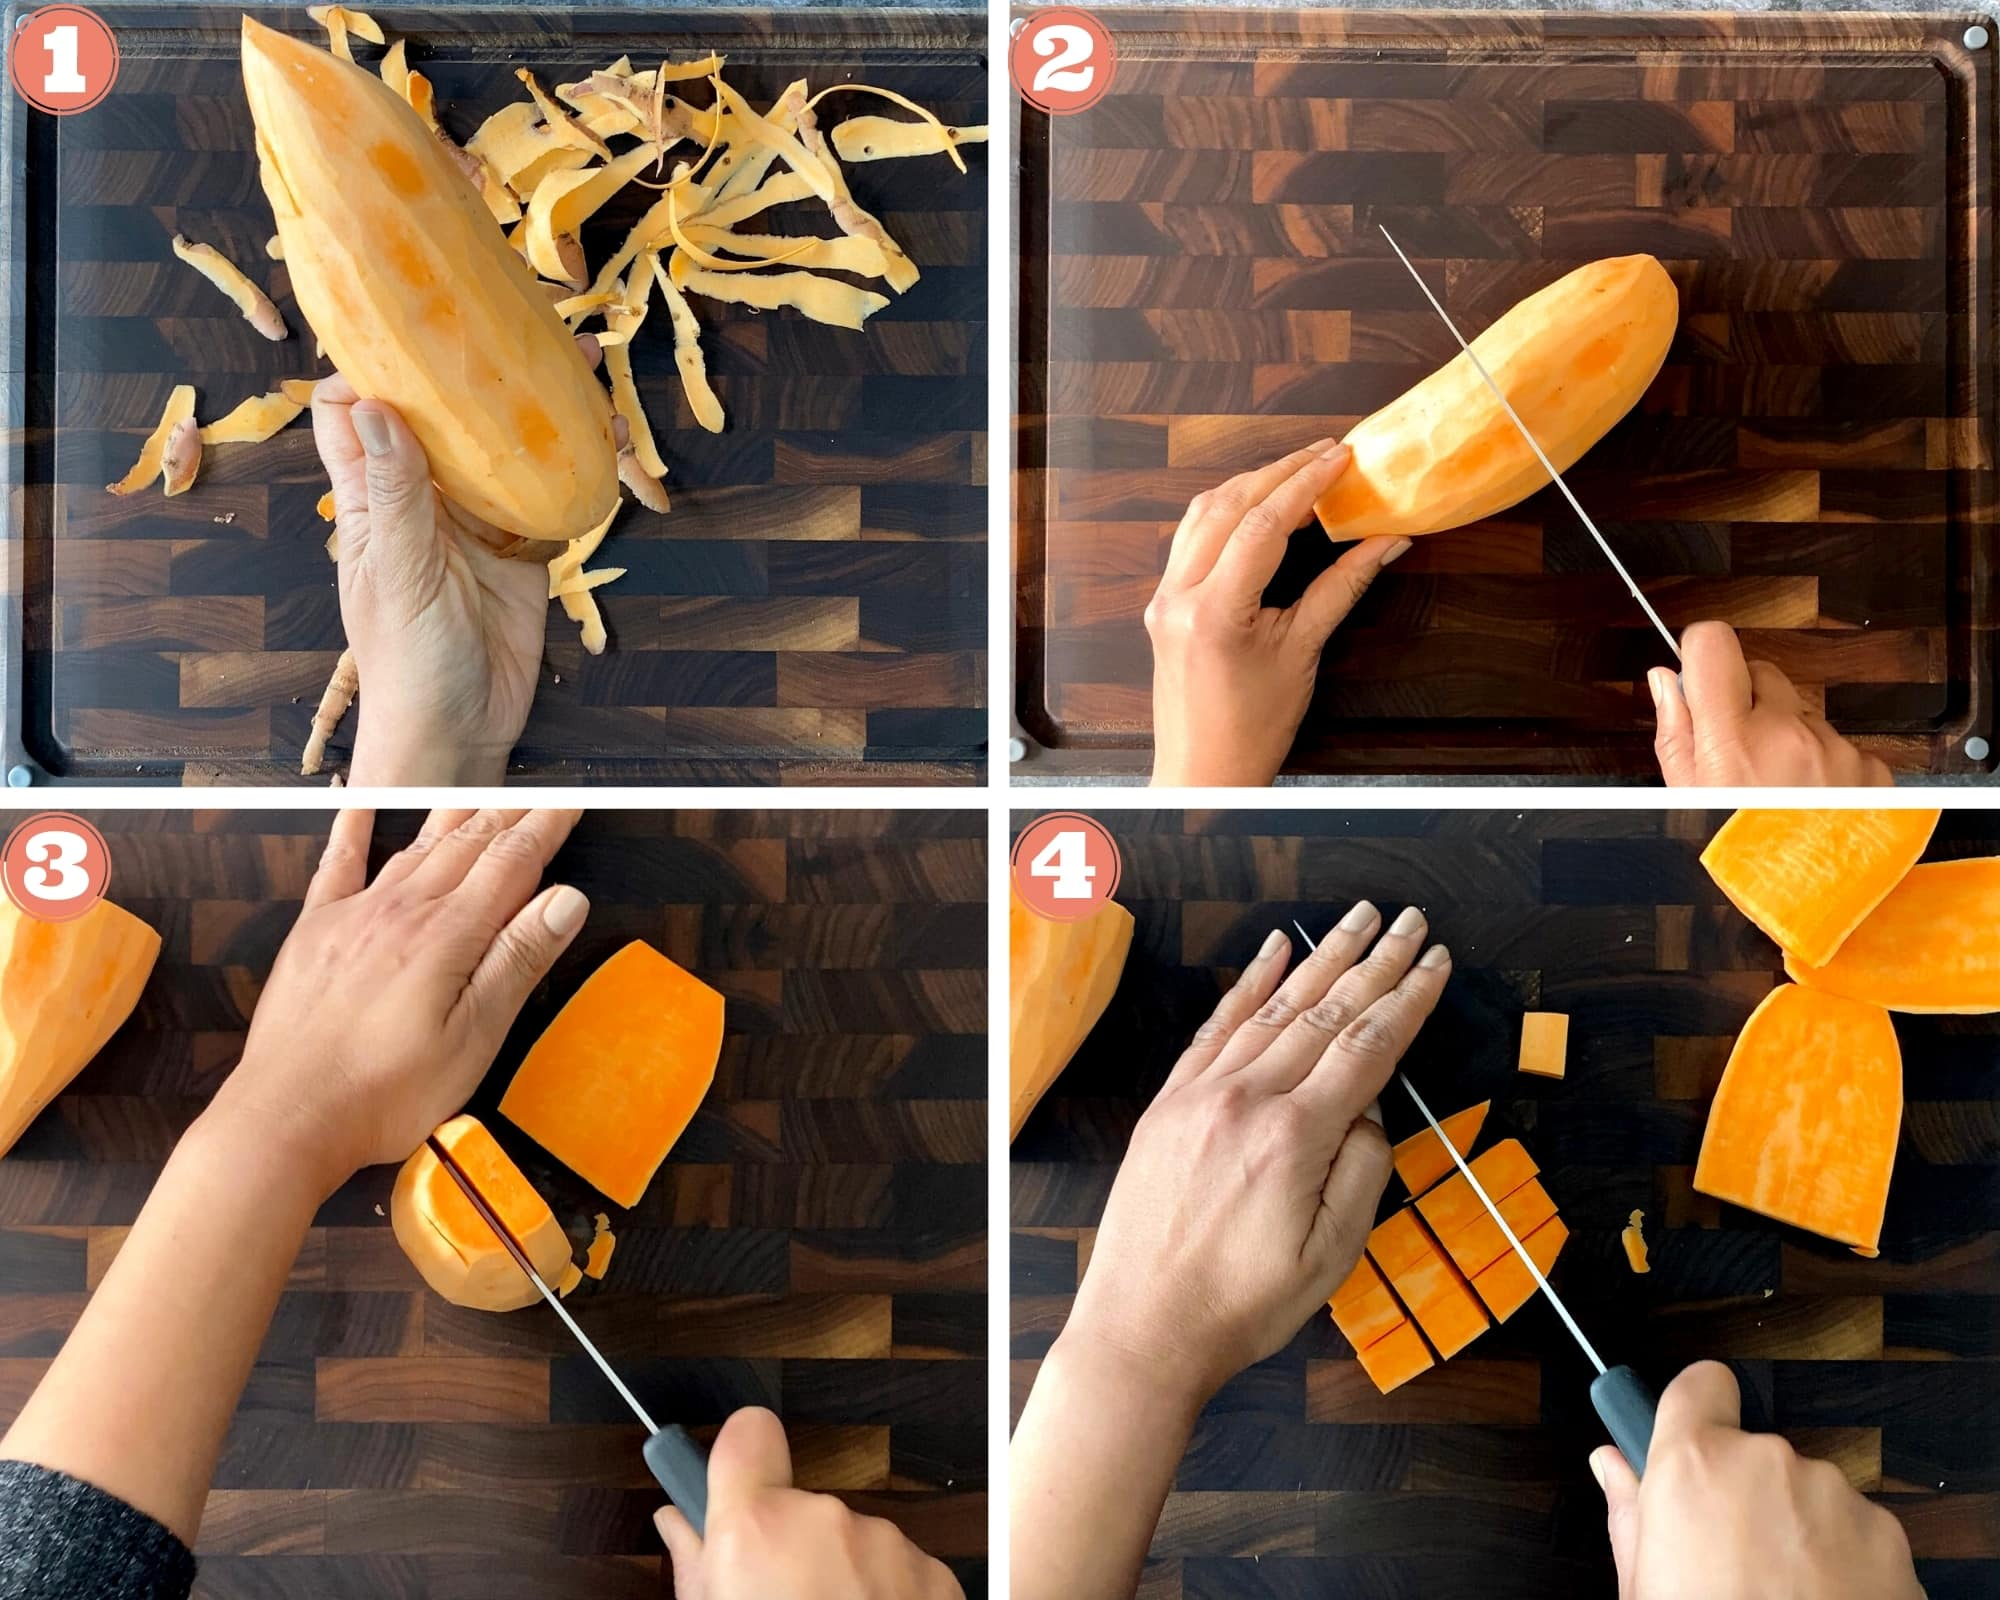 Steps to cut a sweet potato